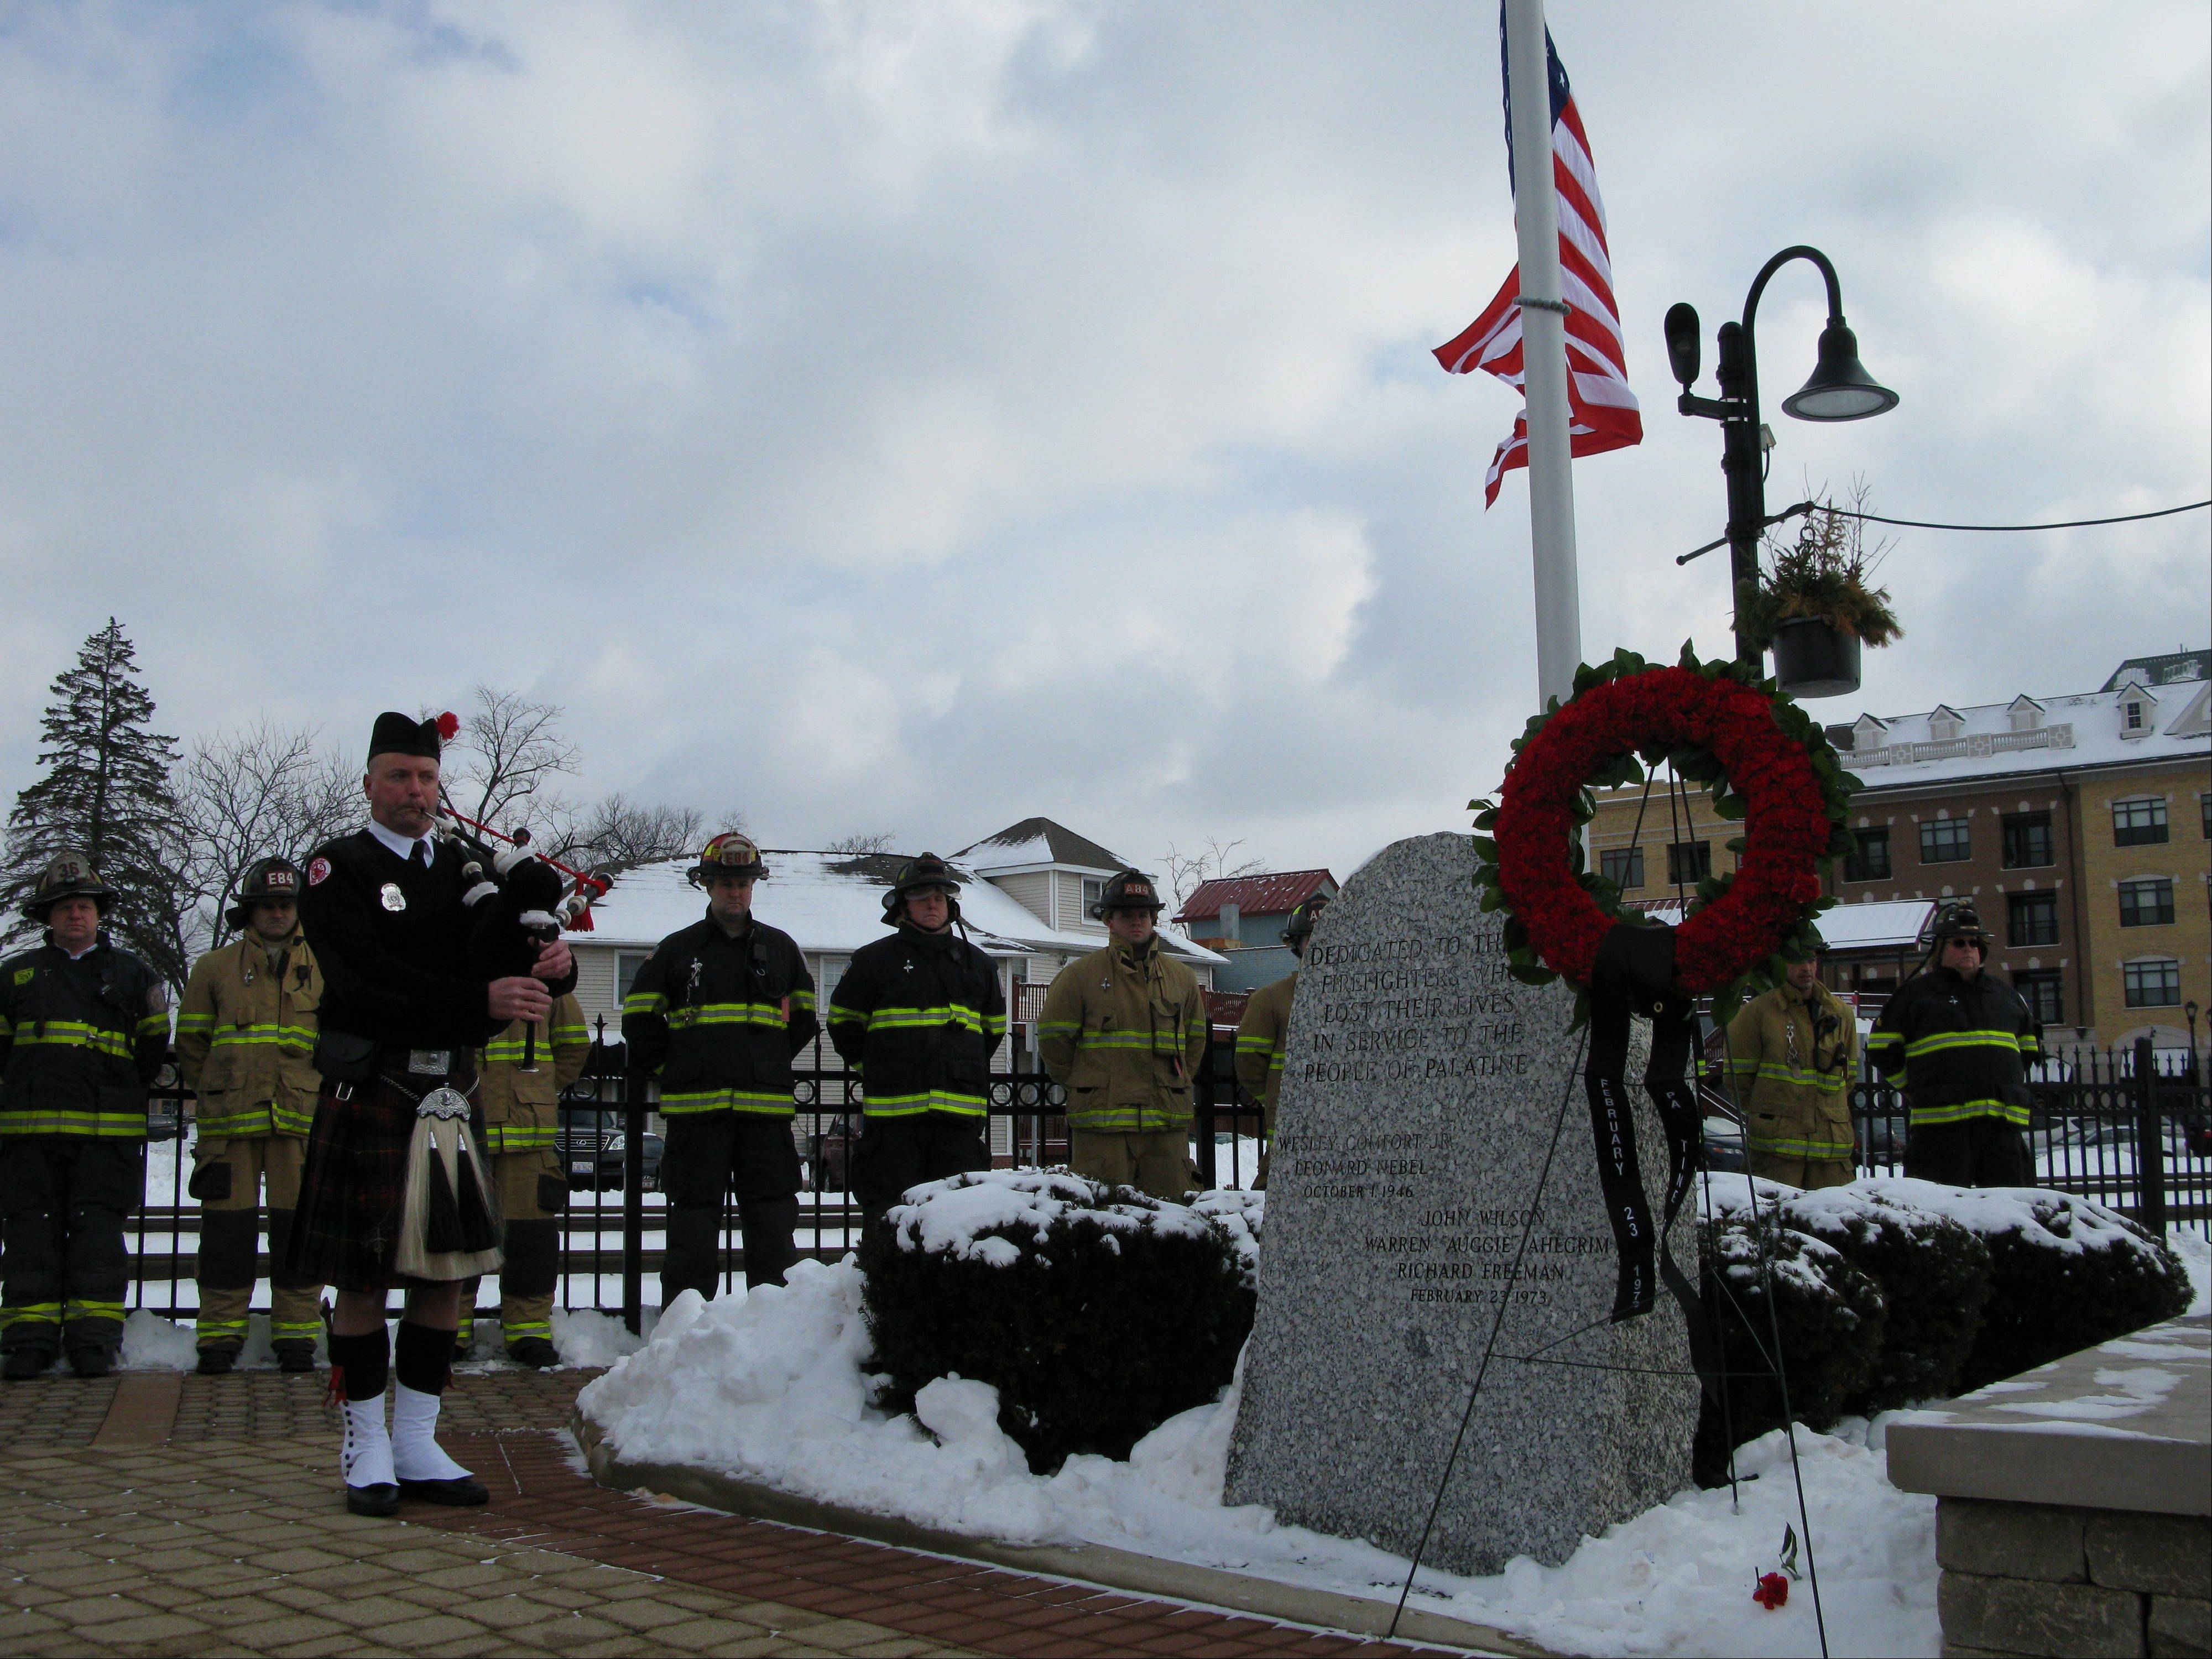 A bagpiper plays after the placing of a wreath on the memorial for three fallen volunteer Palatine firefighters, John Wilson, Richard Freeman and Warren Ahlgrim, who perished during a fire rescue on Feb. 23, 1973. Roughly 200 people, including firefighters from several area departments, attended a ceremony Saturday at the Firefighters Memorial in downtown Palatine to honor their memory and commemorate the 40th anniversary of their deaths.